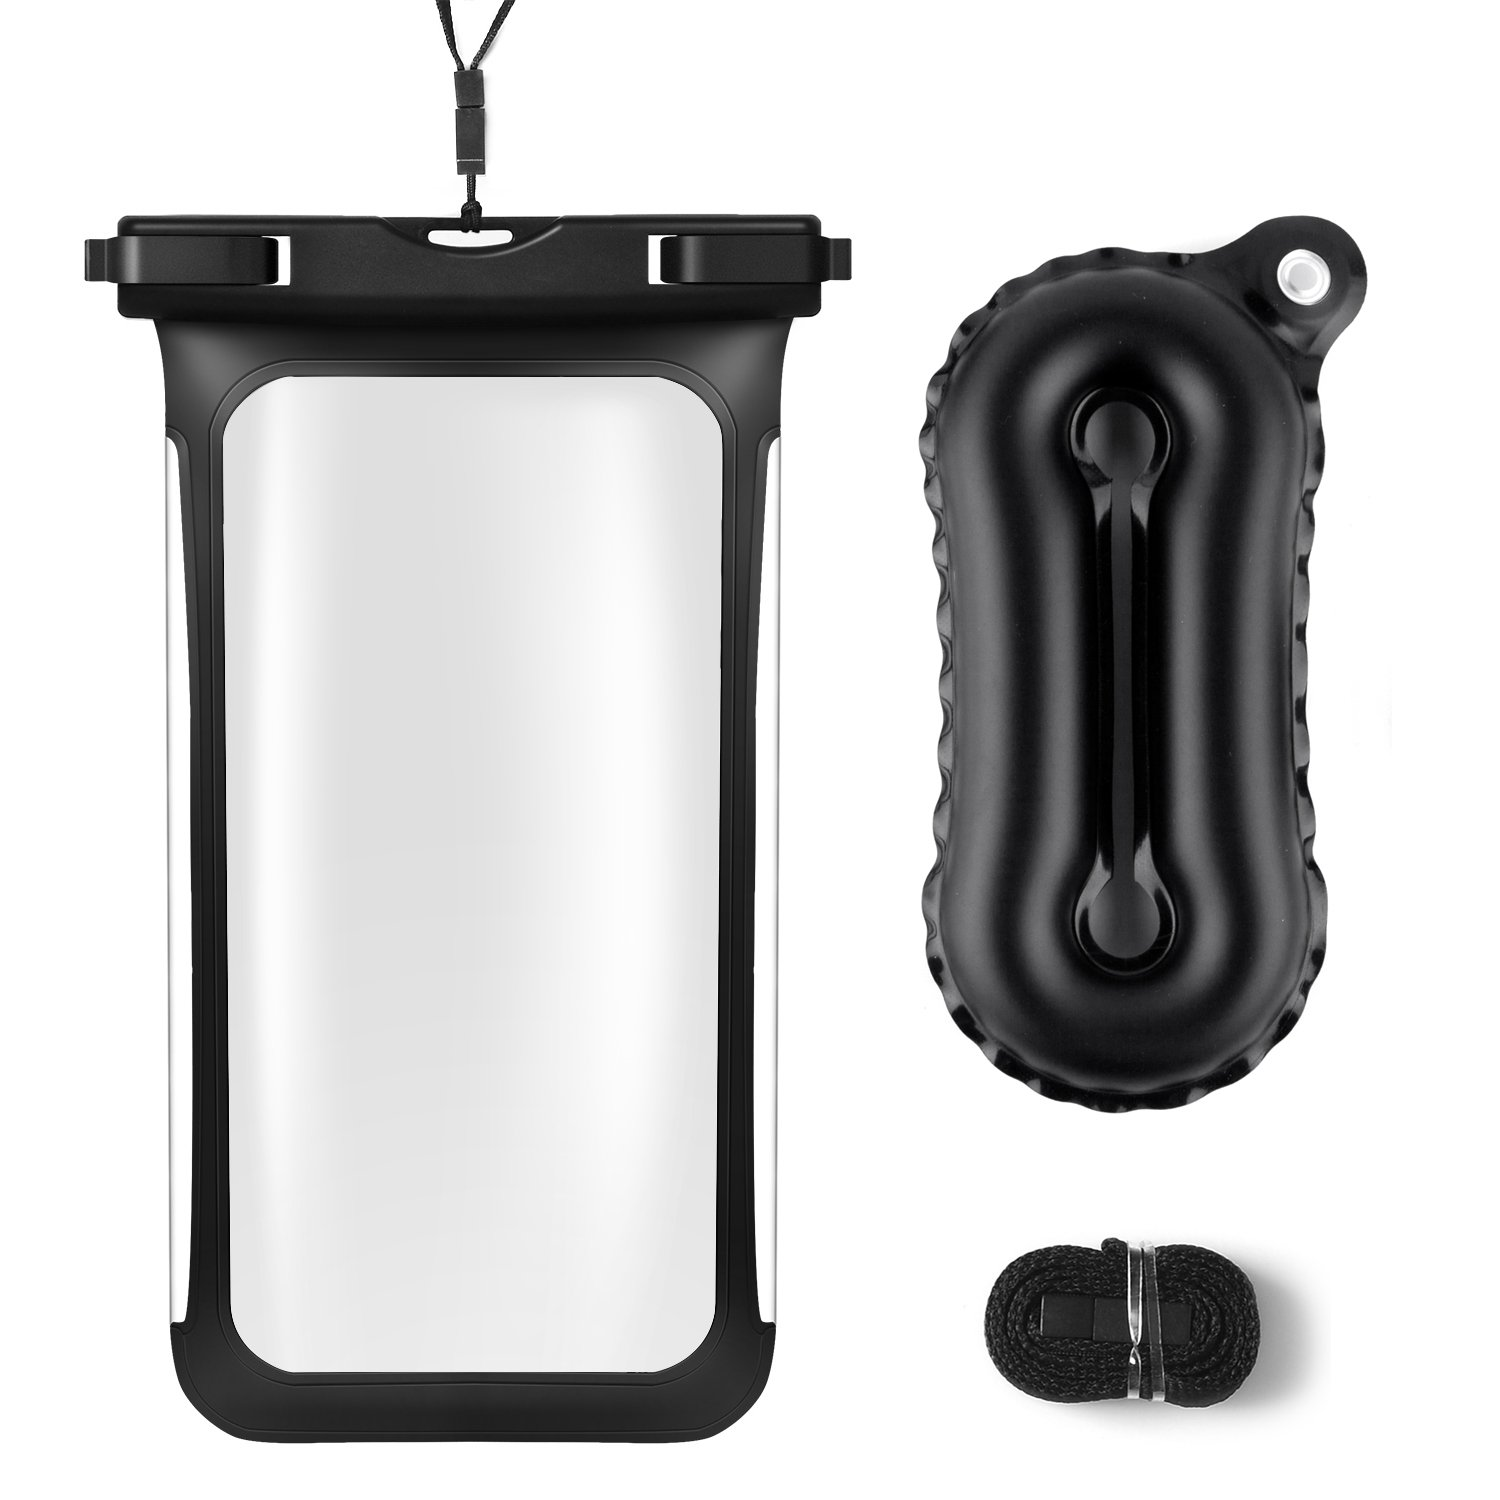 Floating Waterproof Case, iFASCINATE Universal Dry Bag Pouch for iPhone 6 Plus, 6S, 6, 5S, 5,Samsung Note 5 Device under 6.0\